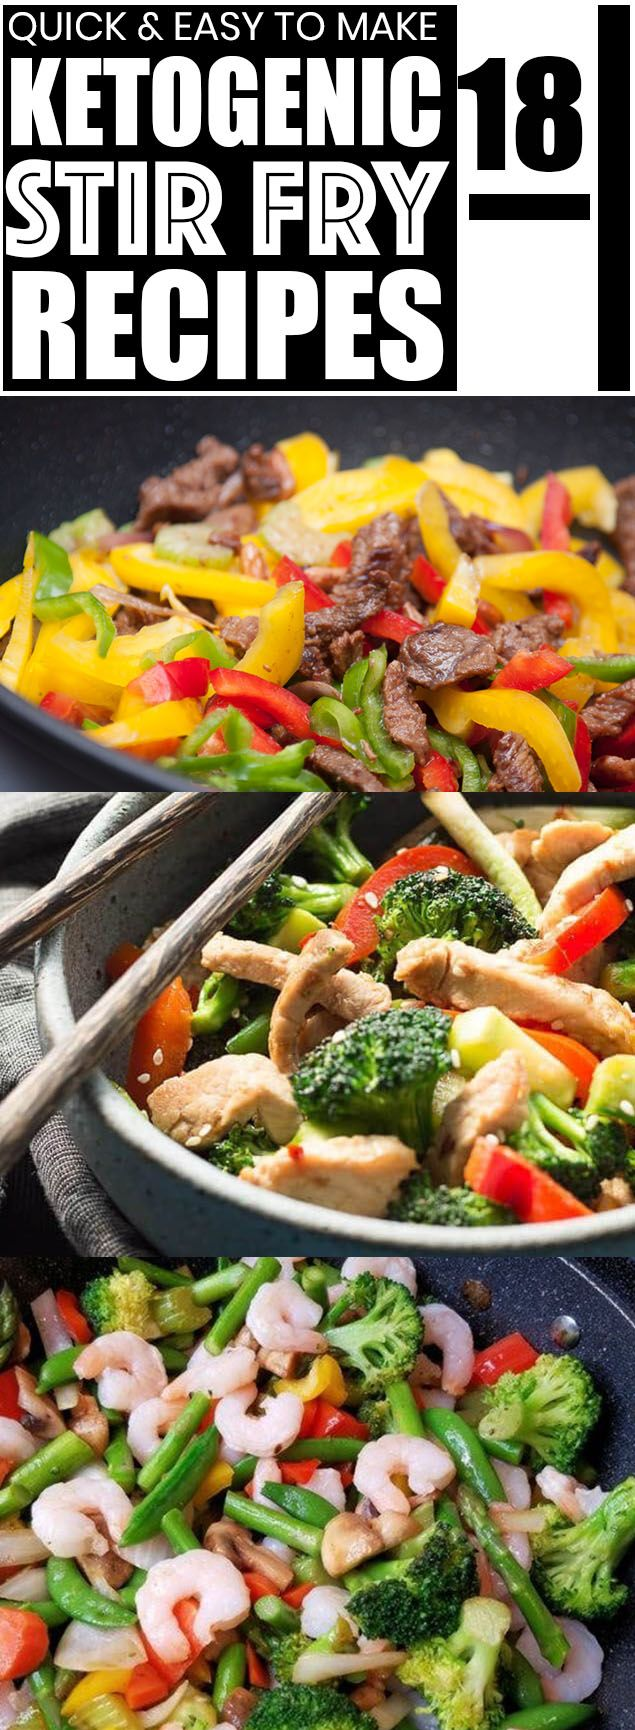 18 Keto Stir Fry Recipes That Will Help You Lose Weight FAST! #healthystirfry